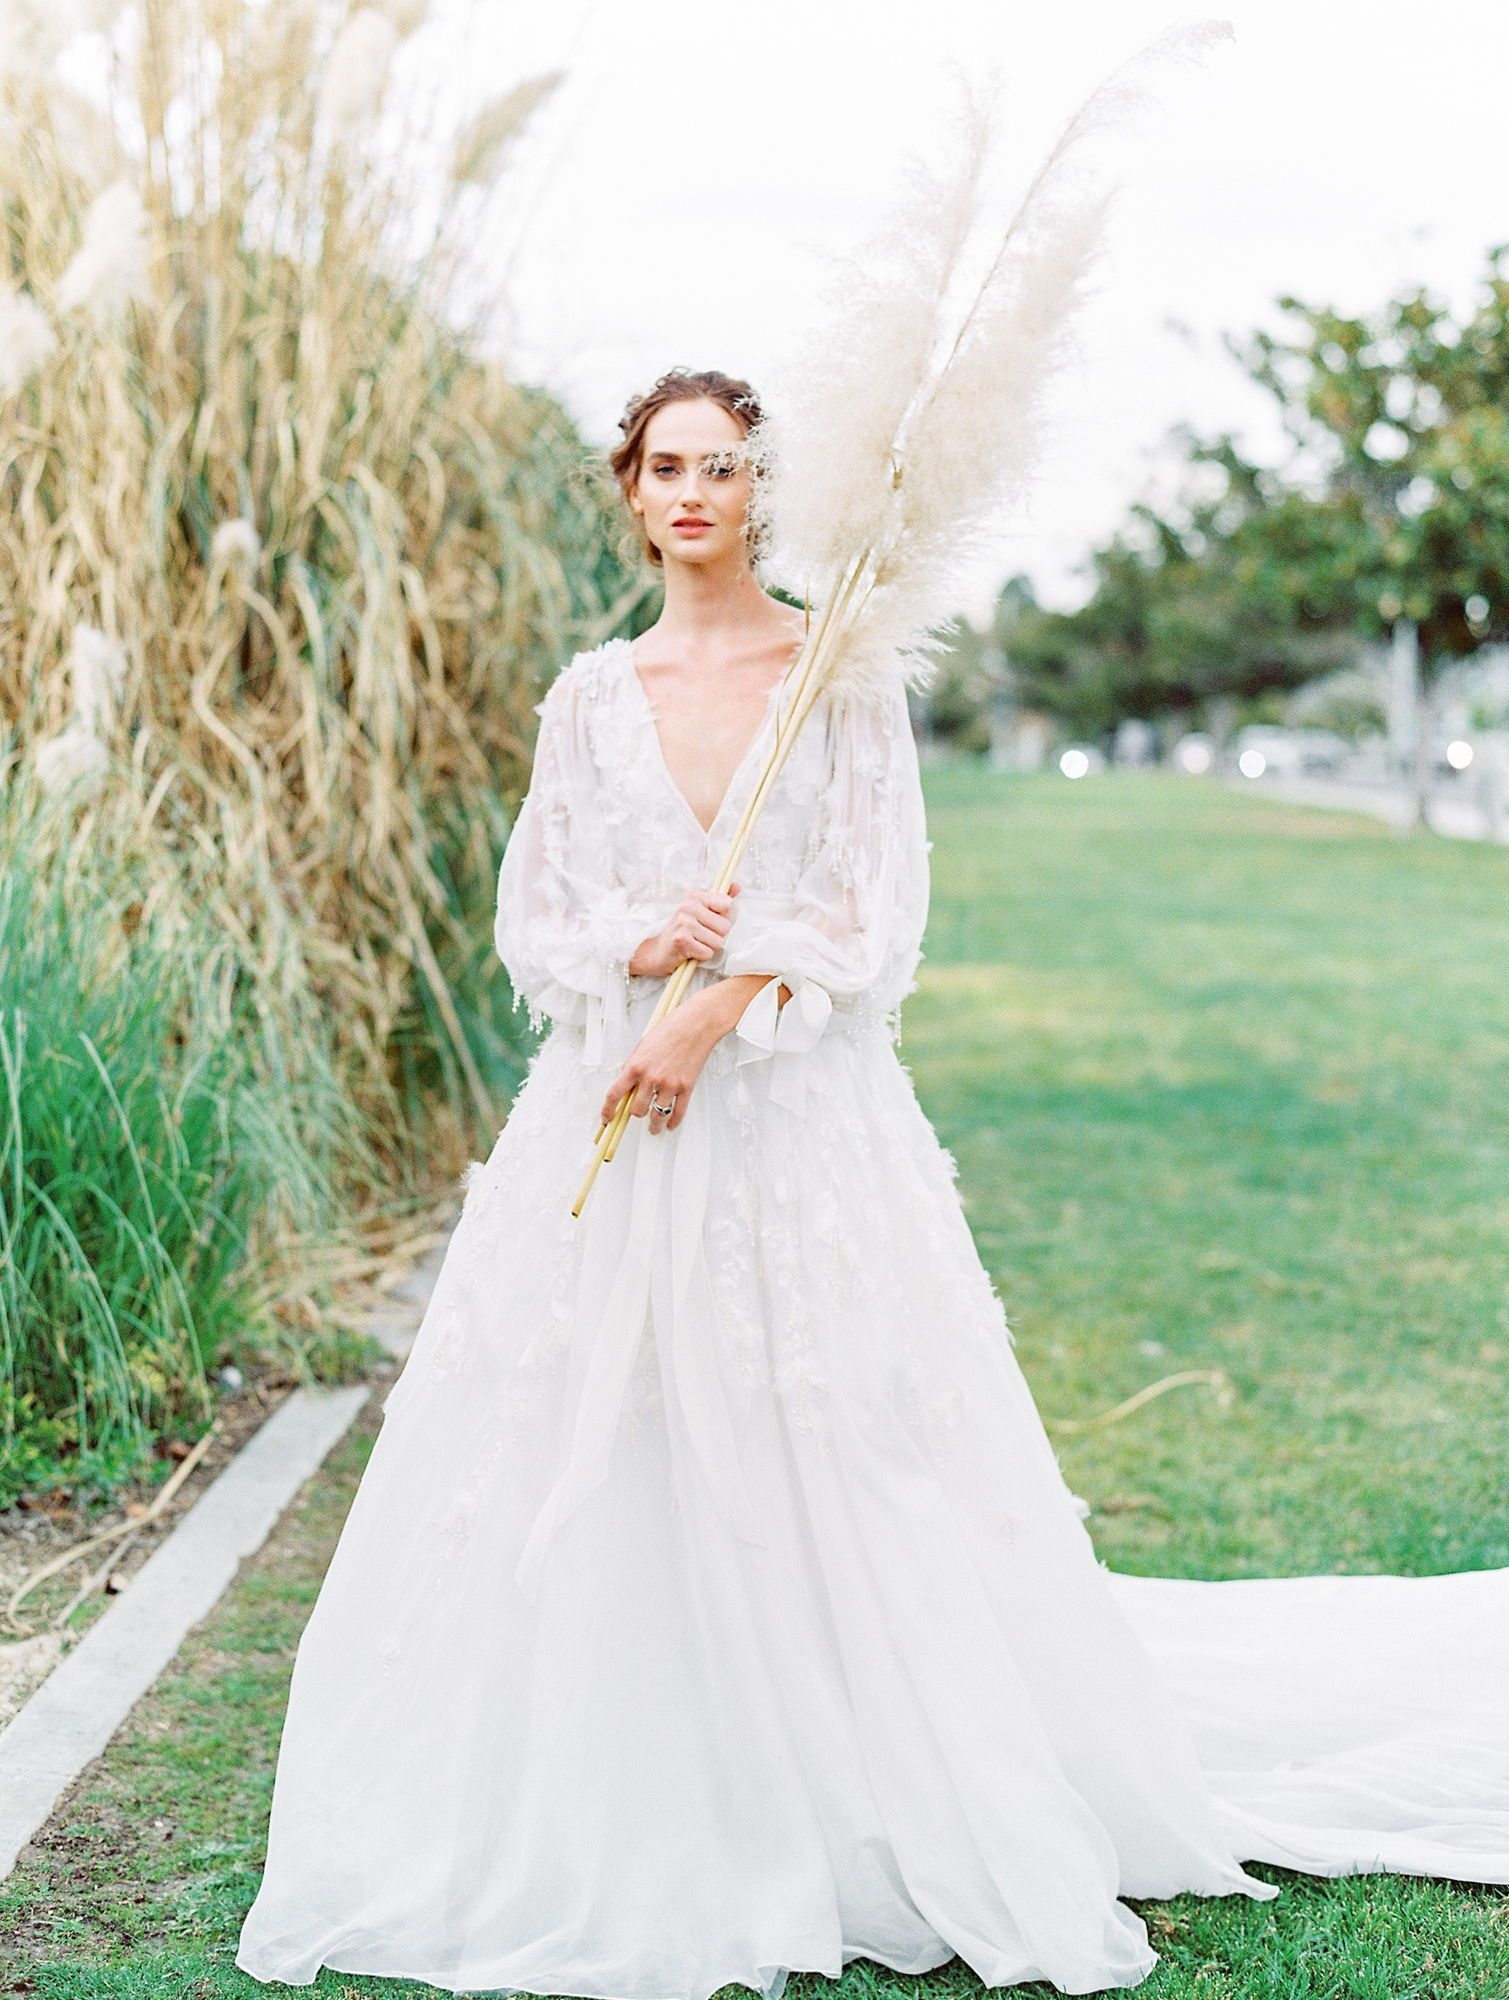 8540cfb7 Bride holding pampas grass wearing Long sleeve floral and feather Marchesa  gown from 2018 with tied